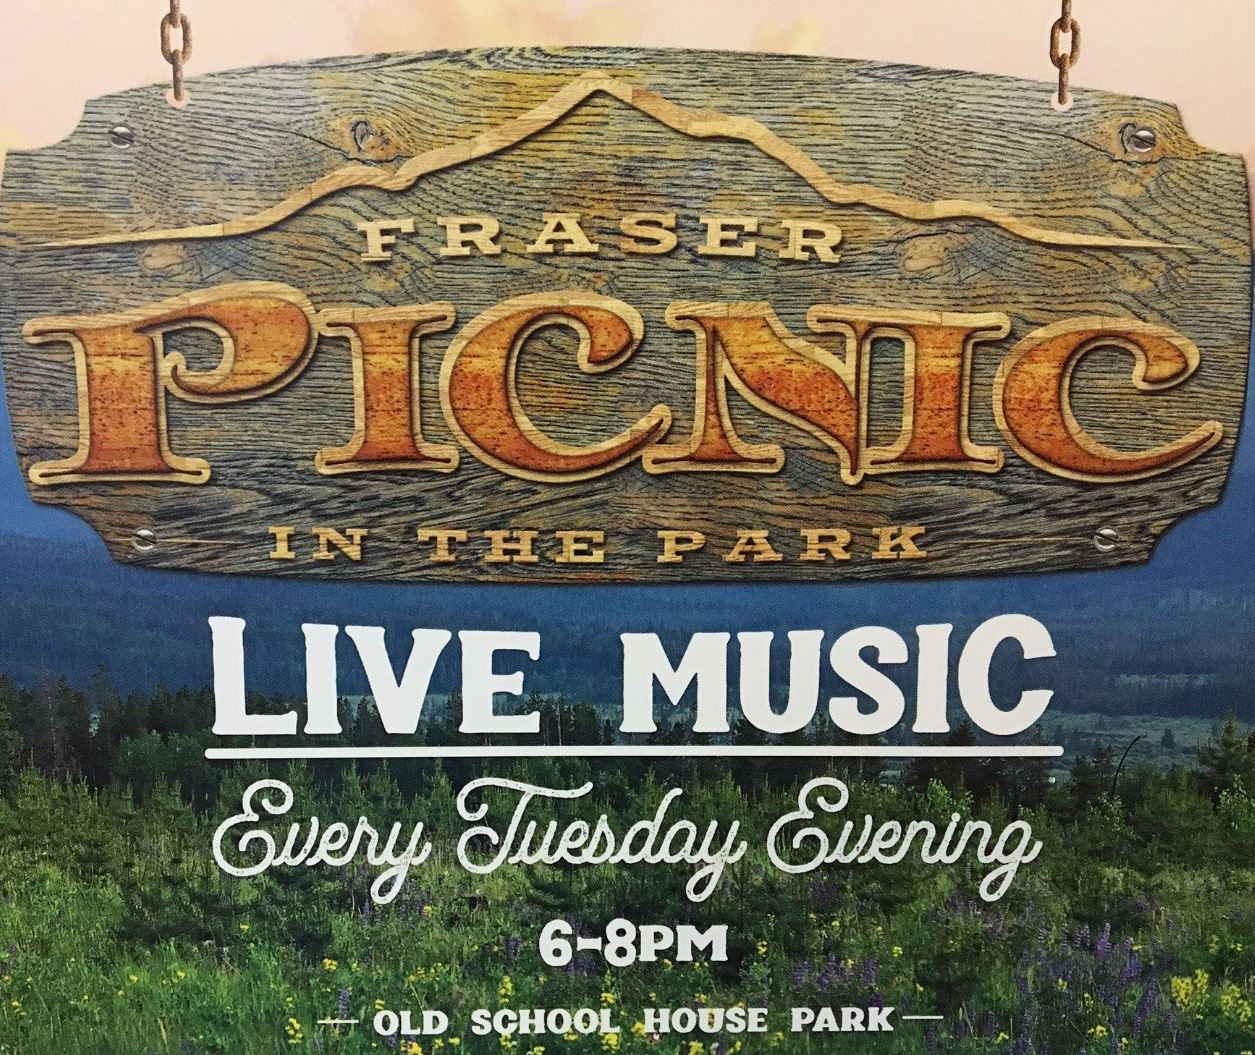 Picnic in the Park poster of wooden sign hanging from chain